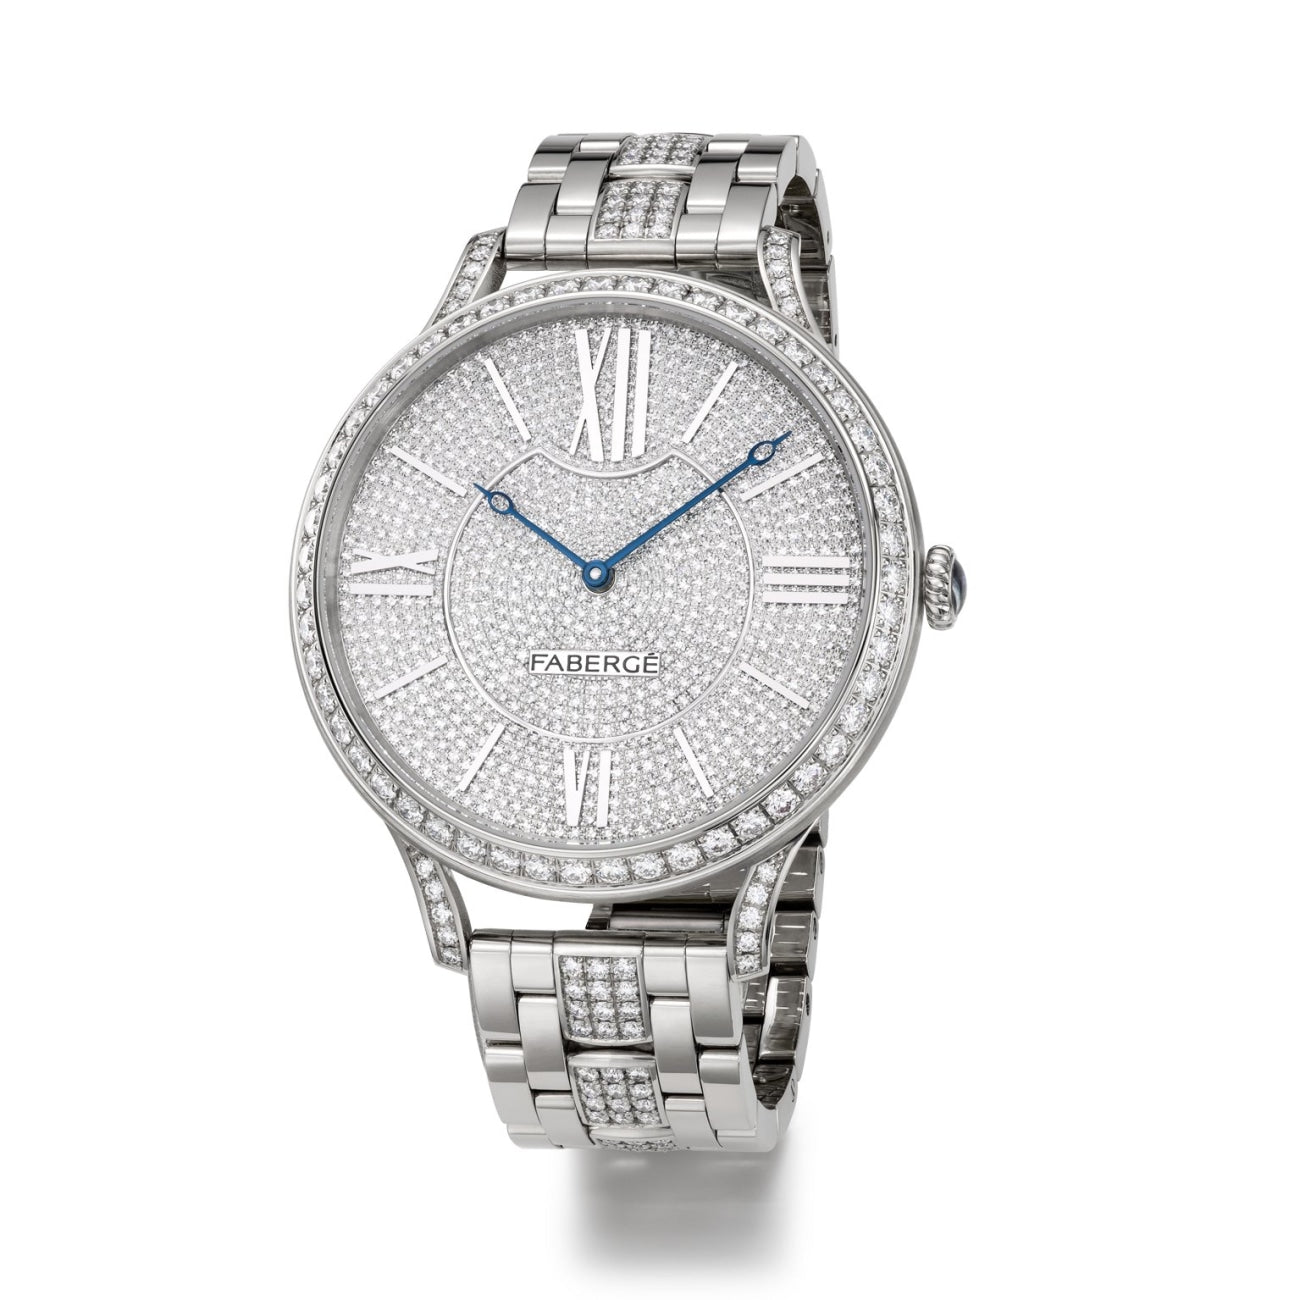 Fabergé Watches - FLIRT 39MM 18 KARAT WHITE GOLD - FULL SET DIAL | Manfredi Jewels